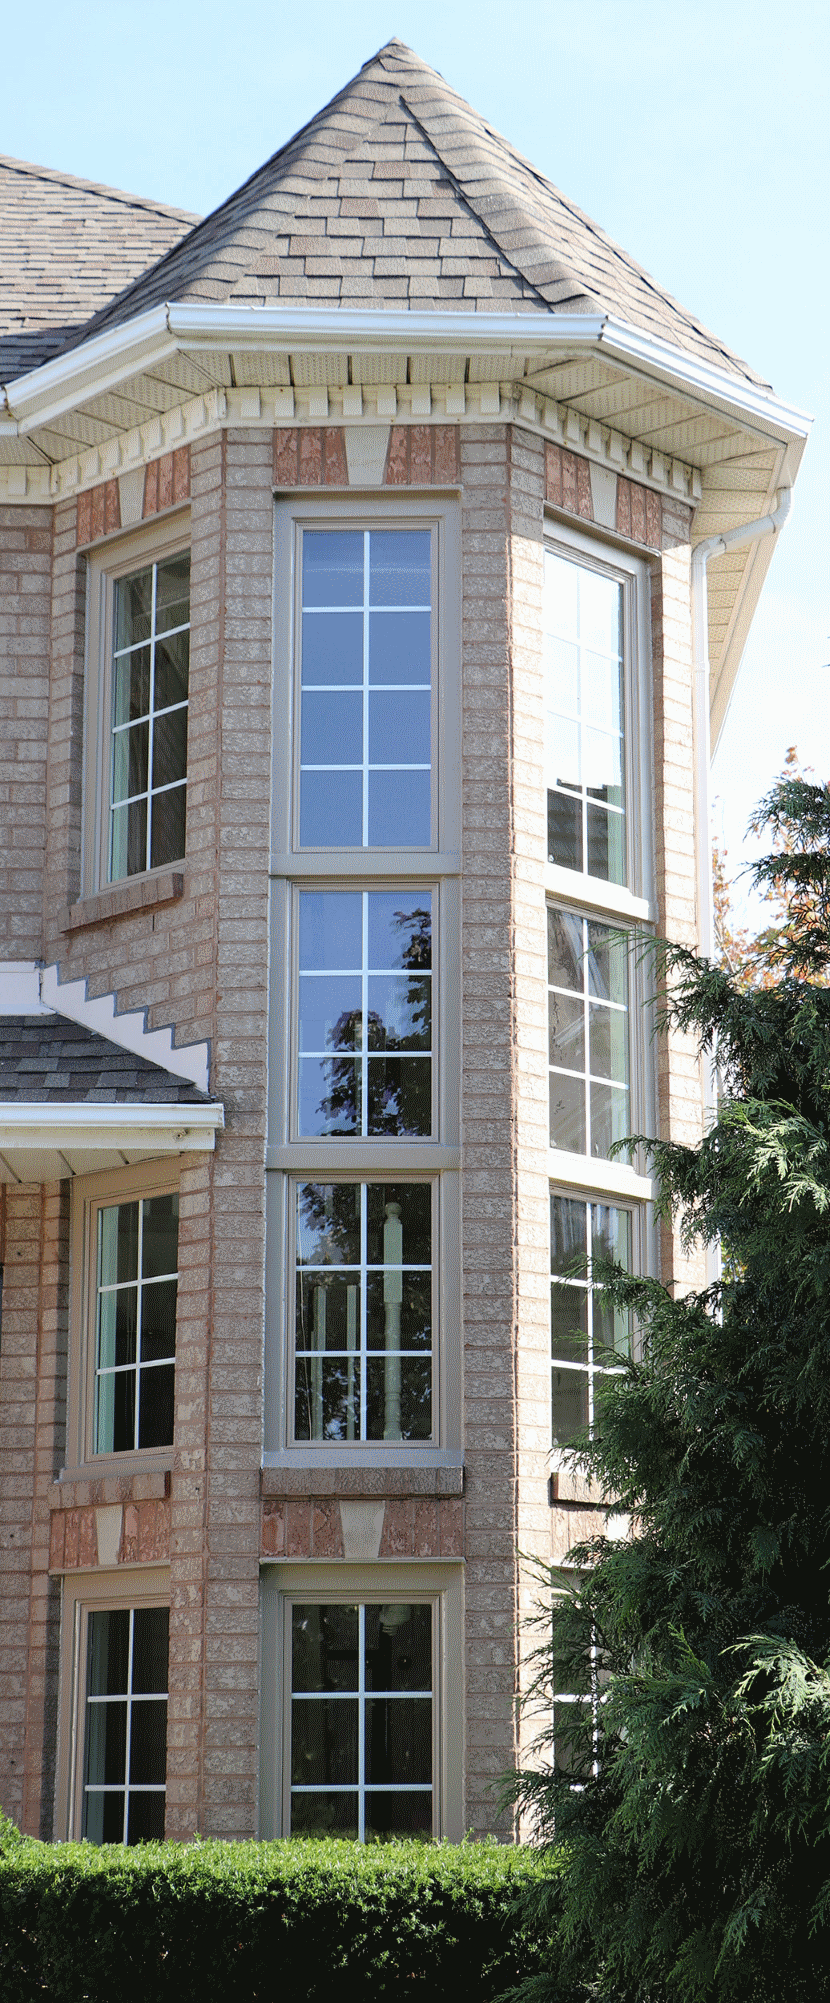 fixed window installation stoney creek ontario 71818-0039 830